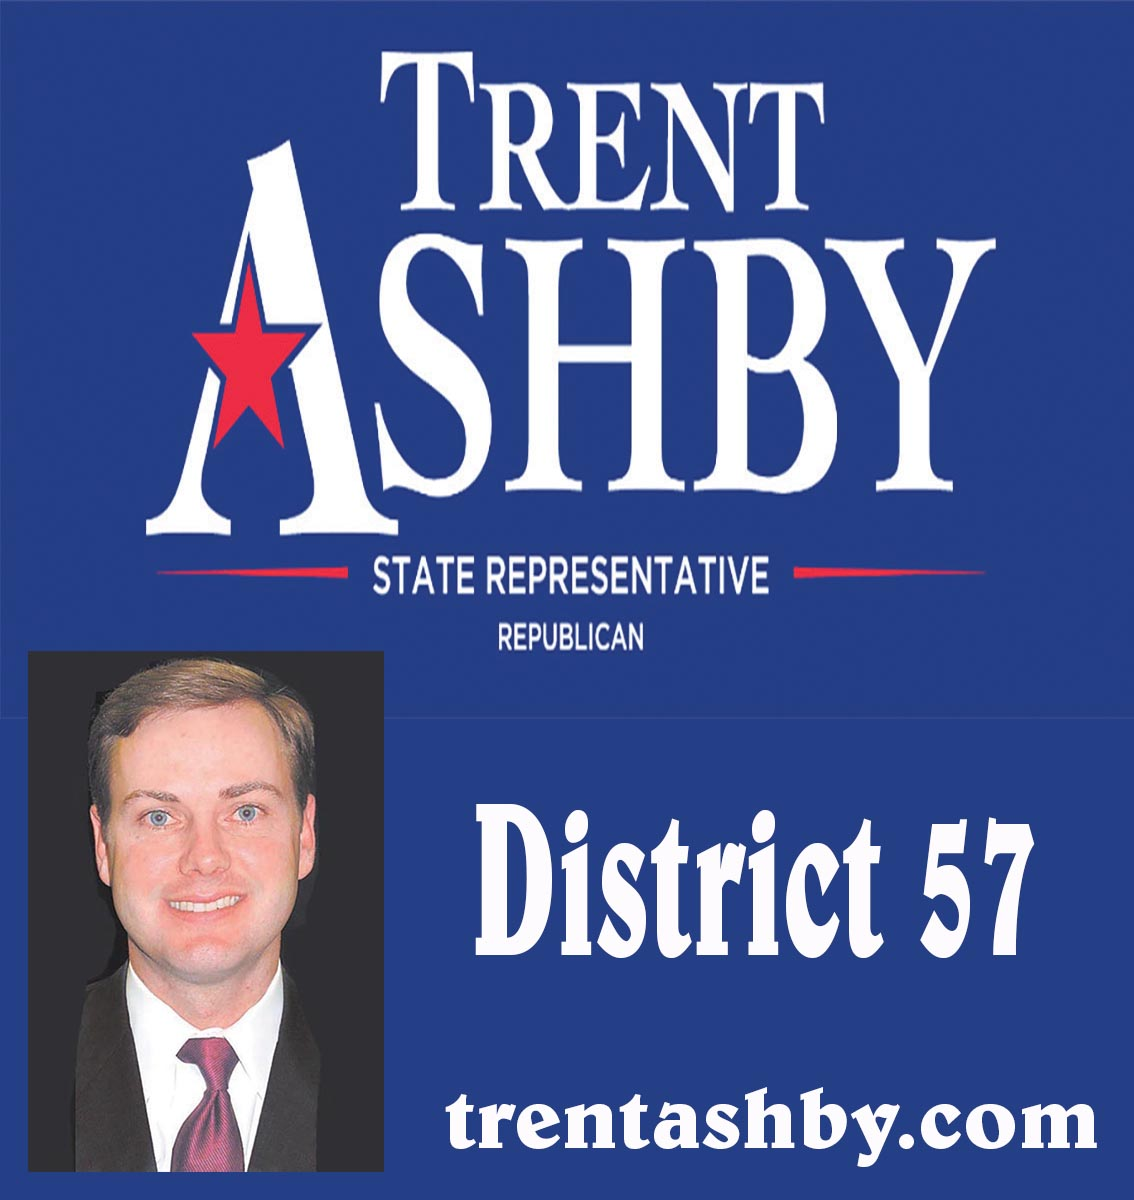 Trent-Ashby-web-ad-july-2018.jpg